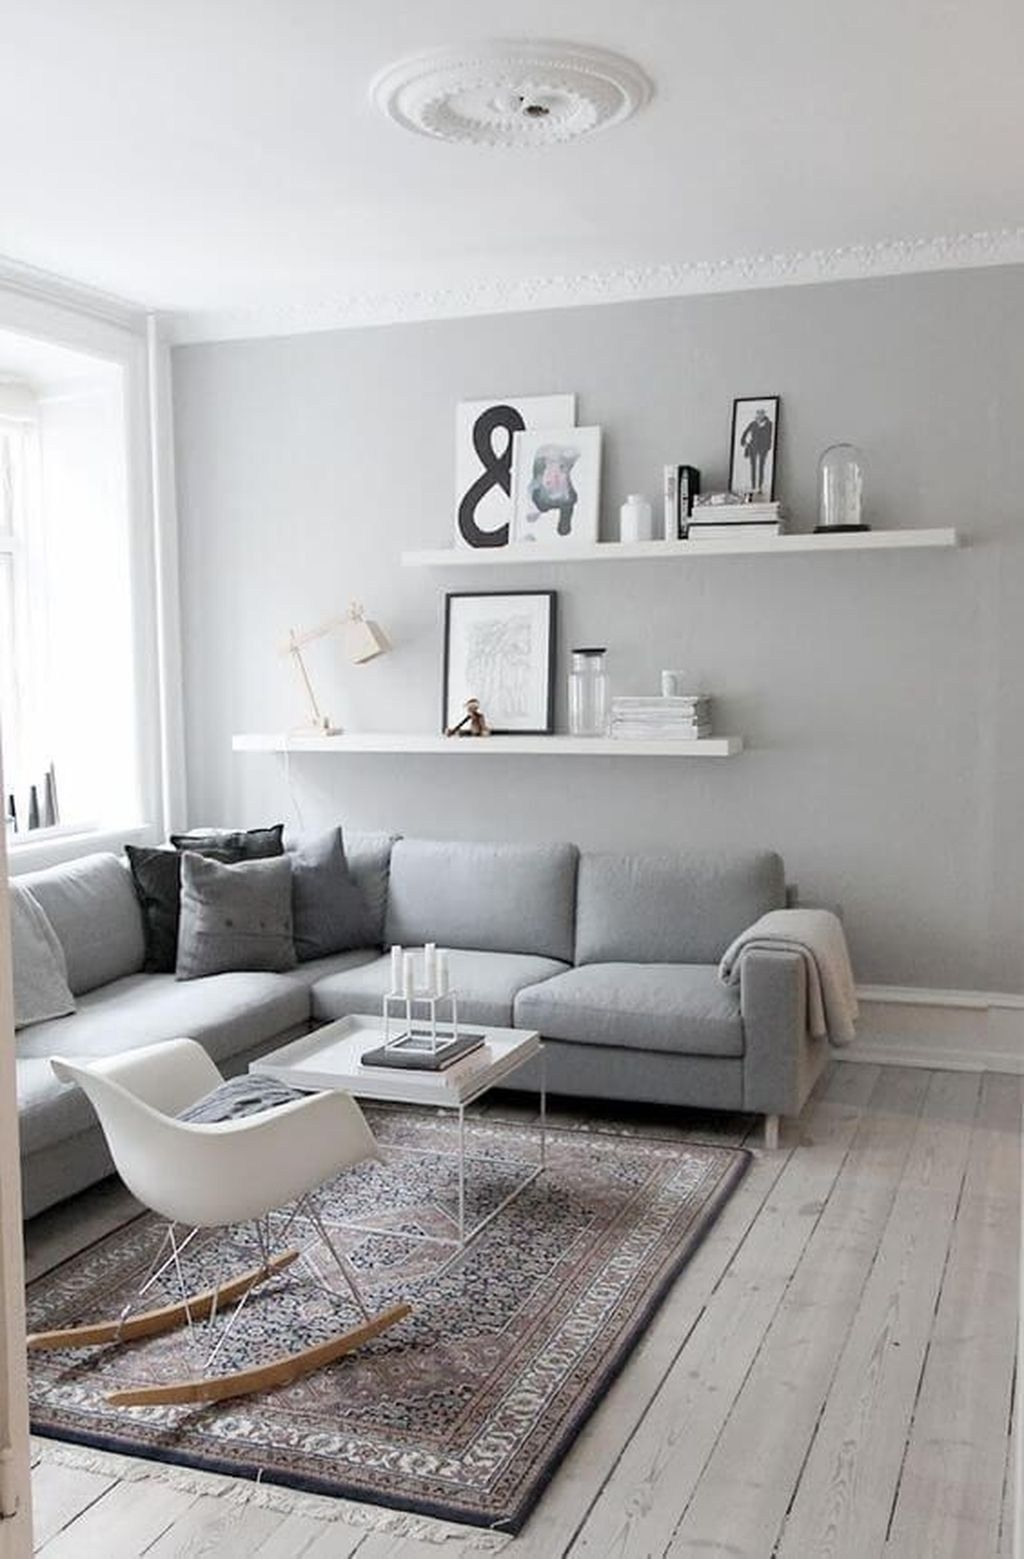 41 + Modern Small Living Room Decoration #smalllivingroomdecor